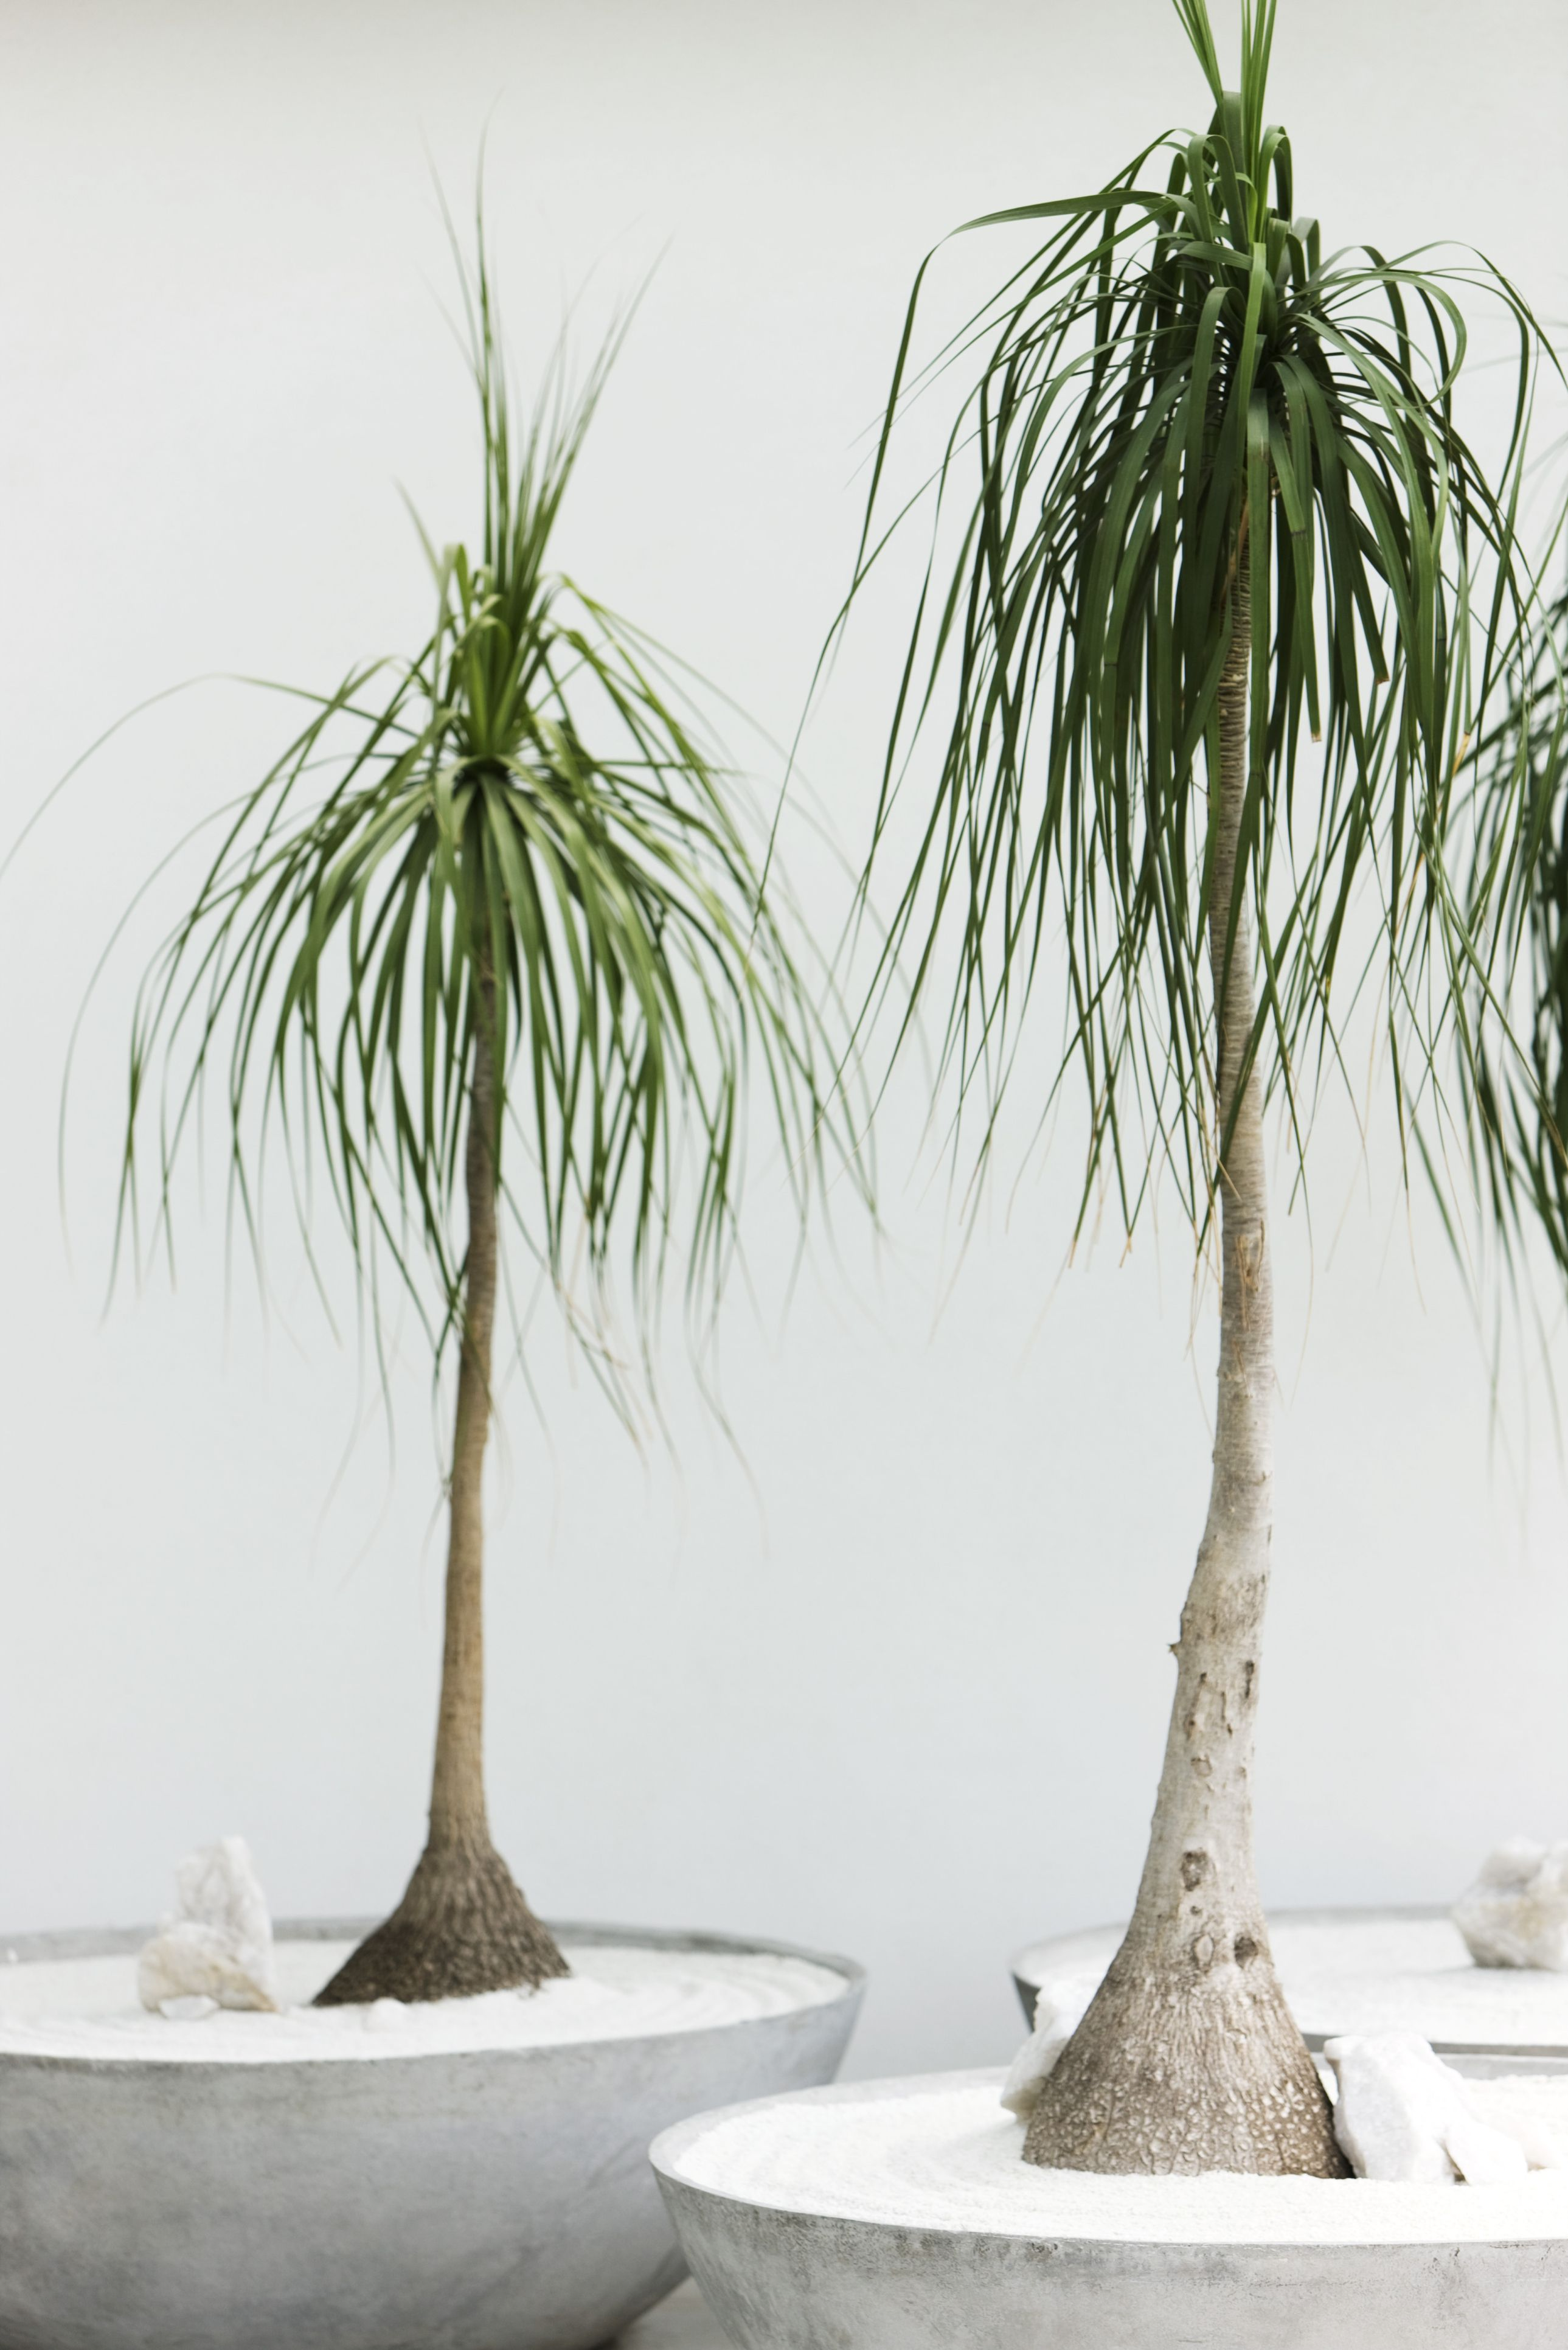 Floor Plants Indoor The 25 Indoor Plants You Can 39t Kill Palm Window And Plants